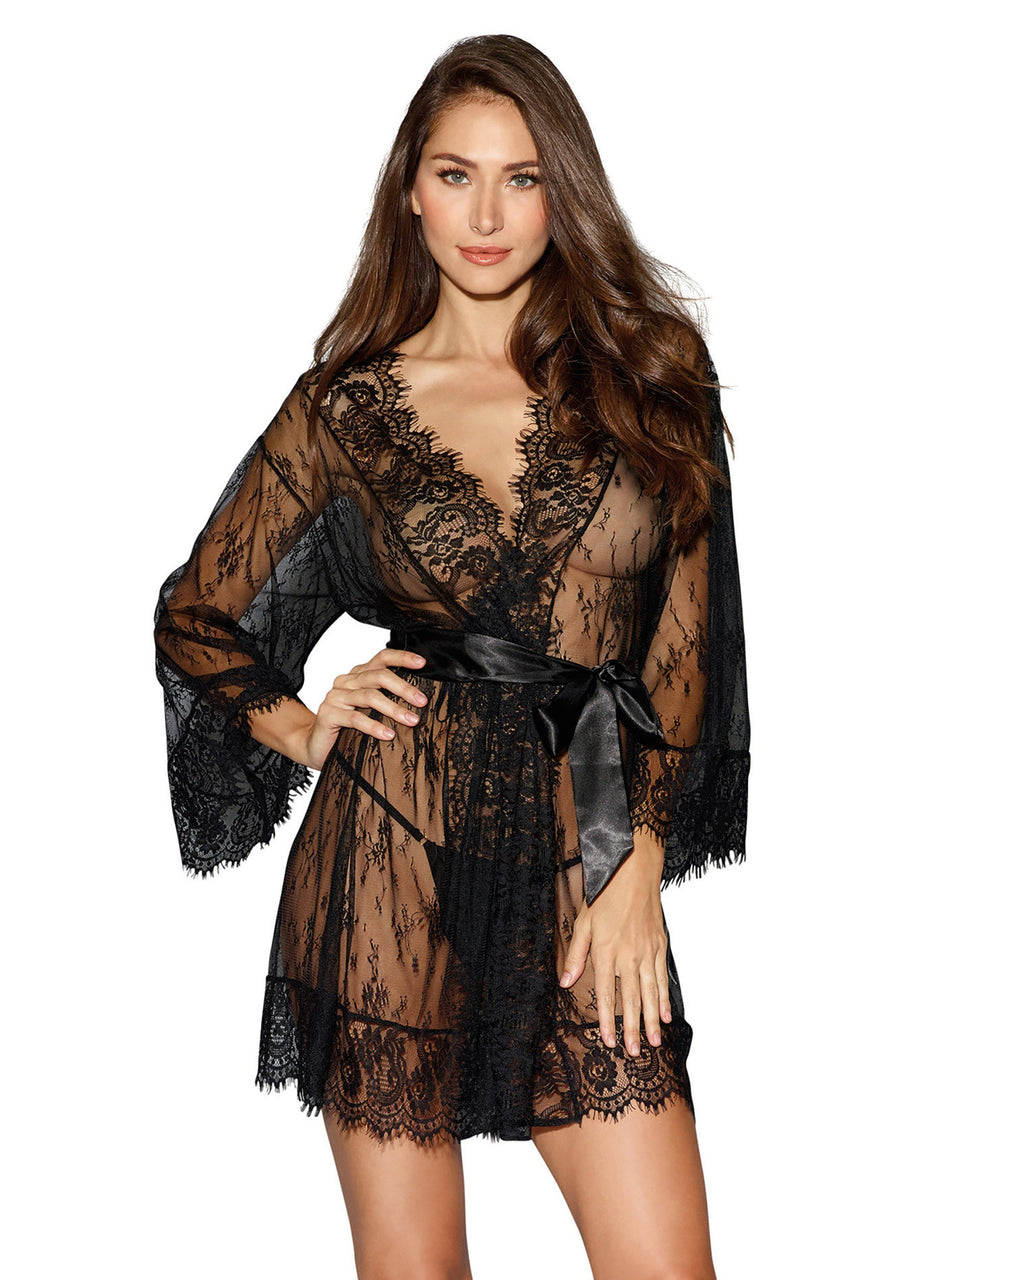 Lace Kimono Robe Robe Dreamgirl International S Black